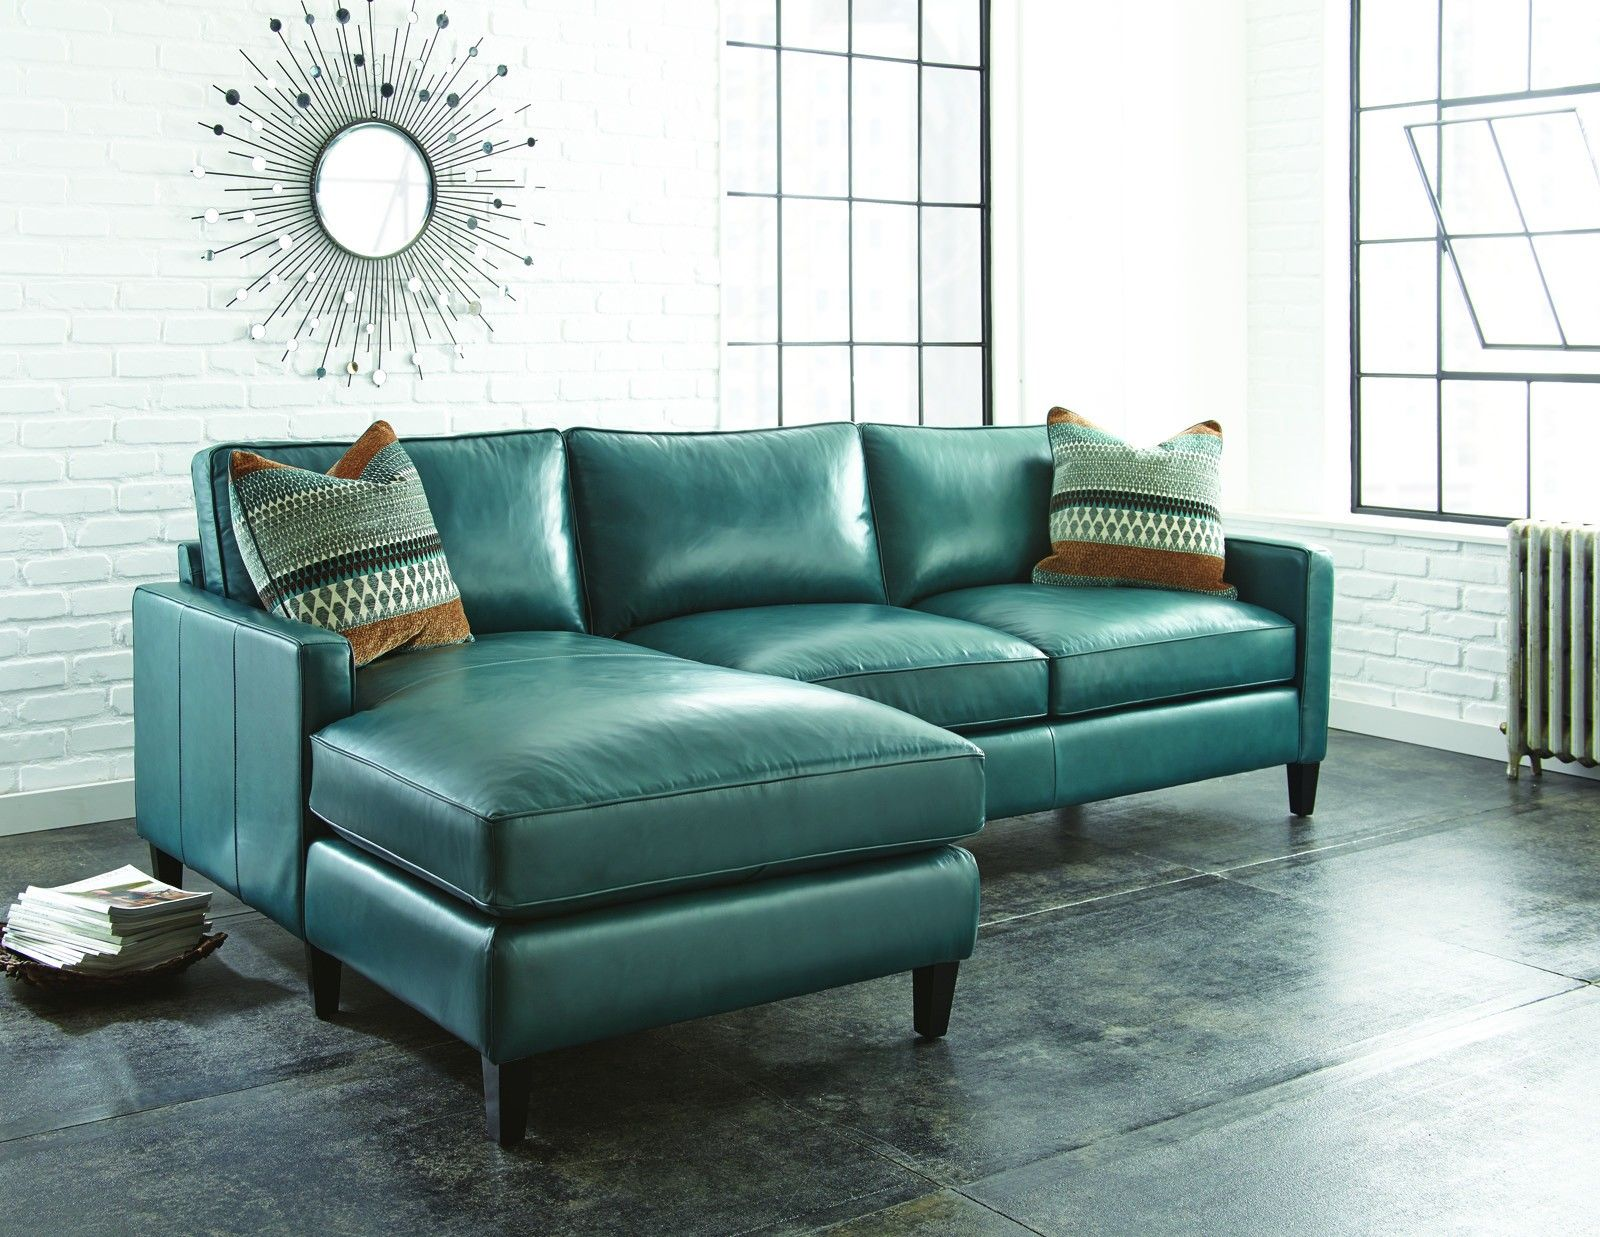 Modular Furniture Living Room How To Reupholster Leather Furniture In 5 Easy Steps Living Room